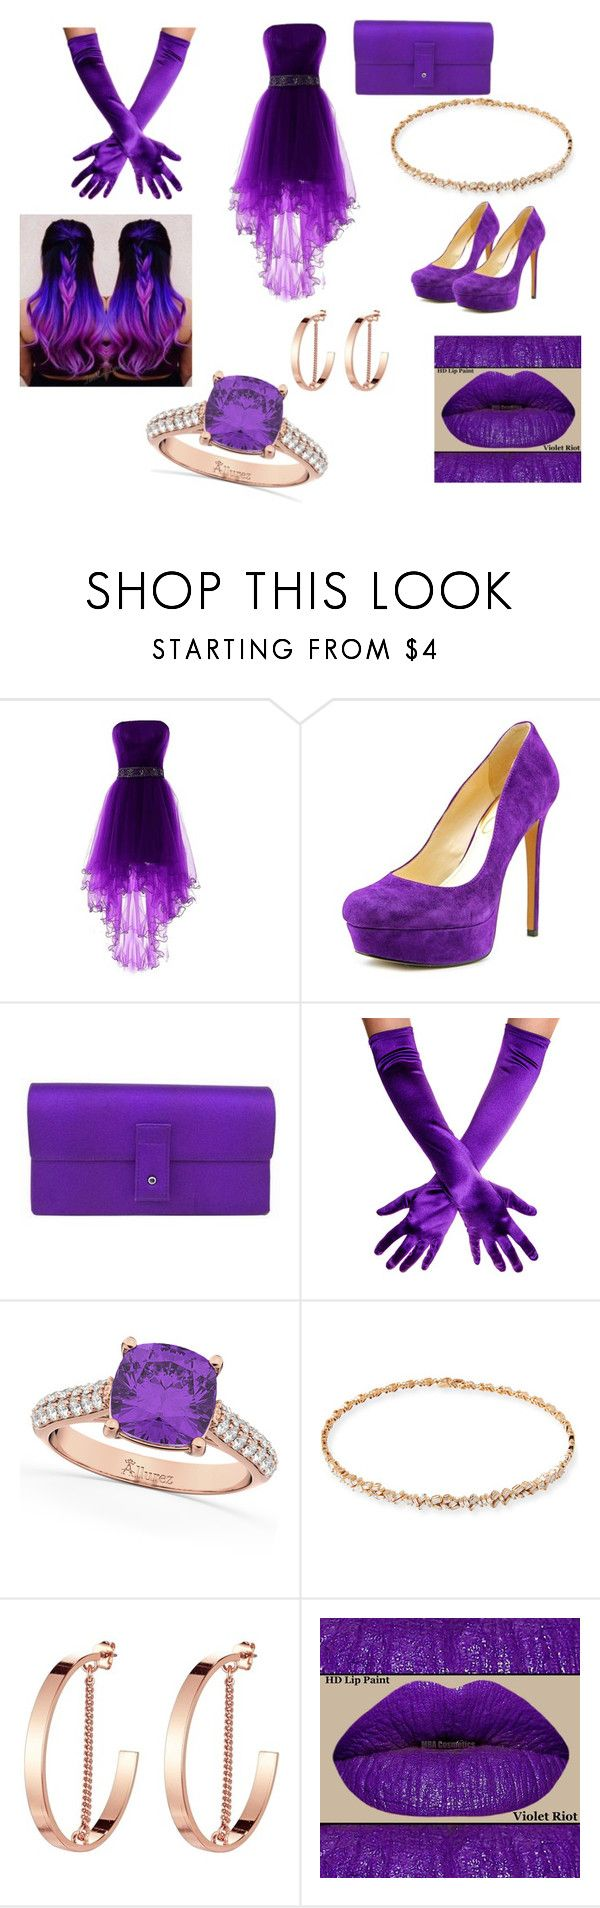 """""""Fearless Violet"""" by outfit-creator ❤ liked on Polyvore featuring Jessica Simpson, Gucci, Allurez, Suzanne Kalan, Jenny Bird and NuMe"""